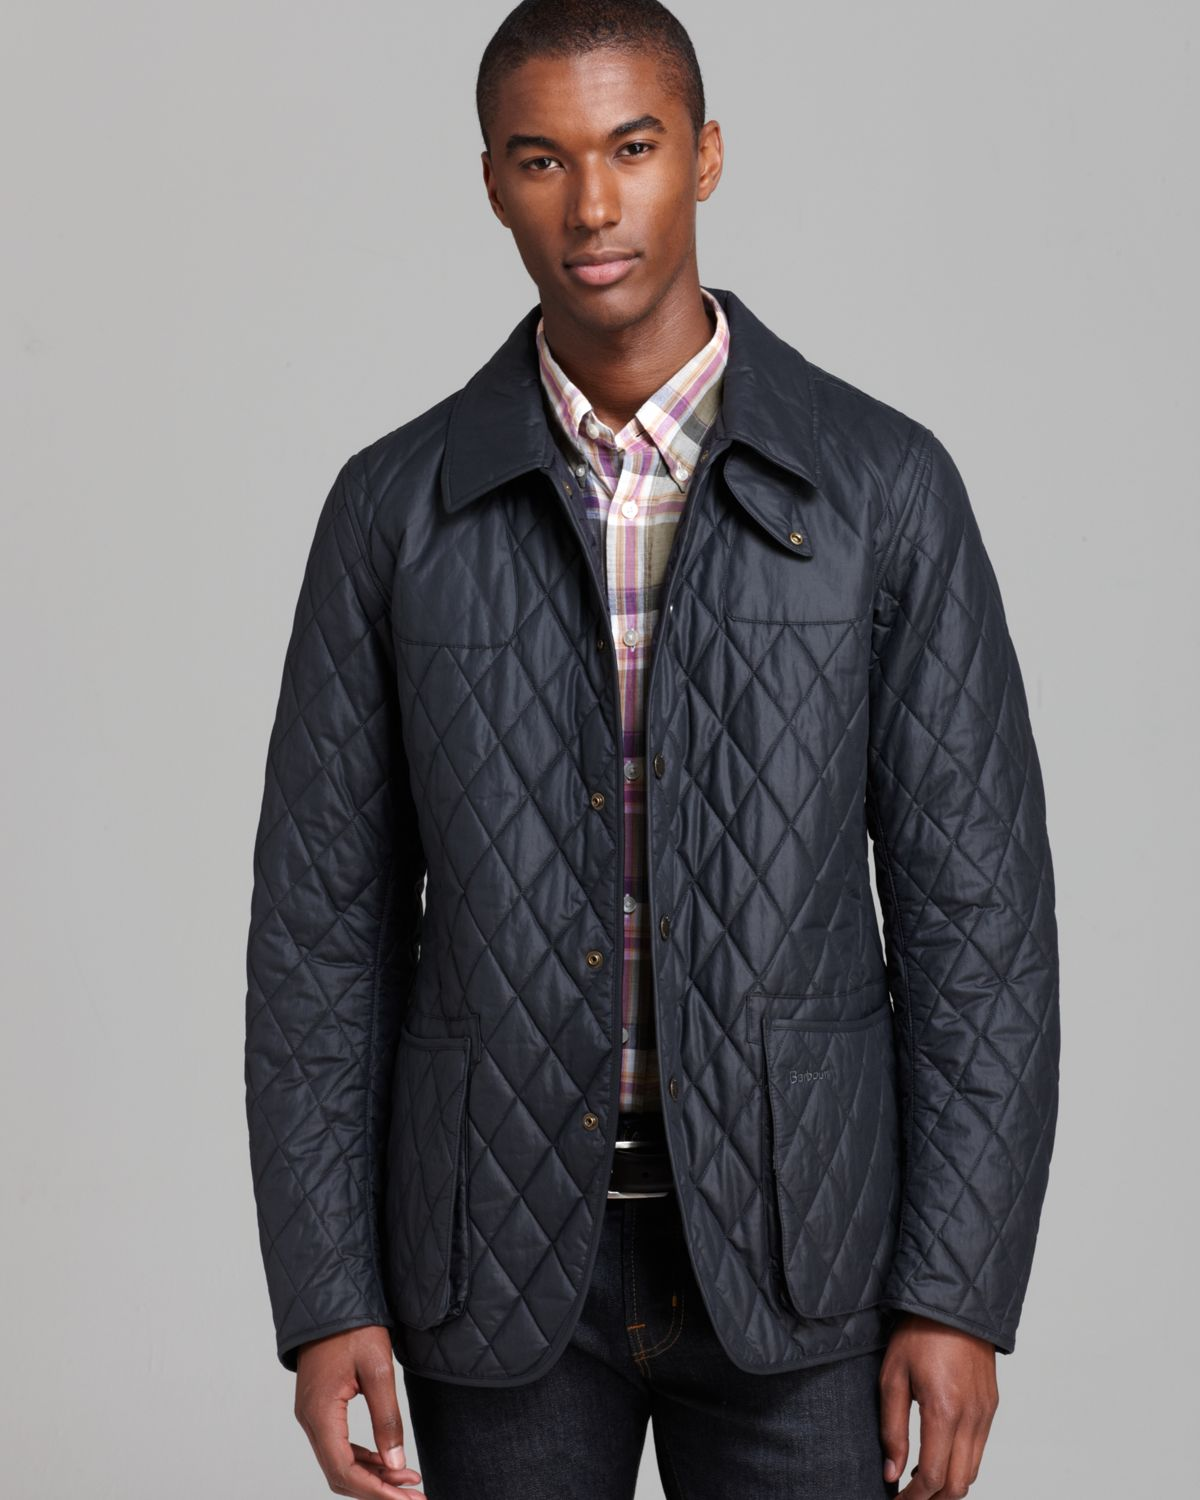 quilt heritage men s black jacket and quilted liddesdale jackets image barbour mens coats